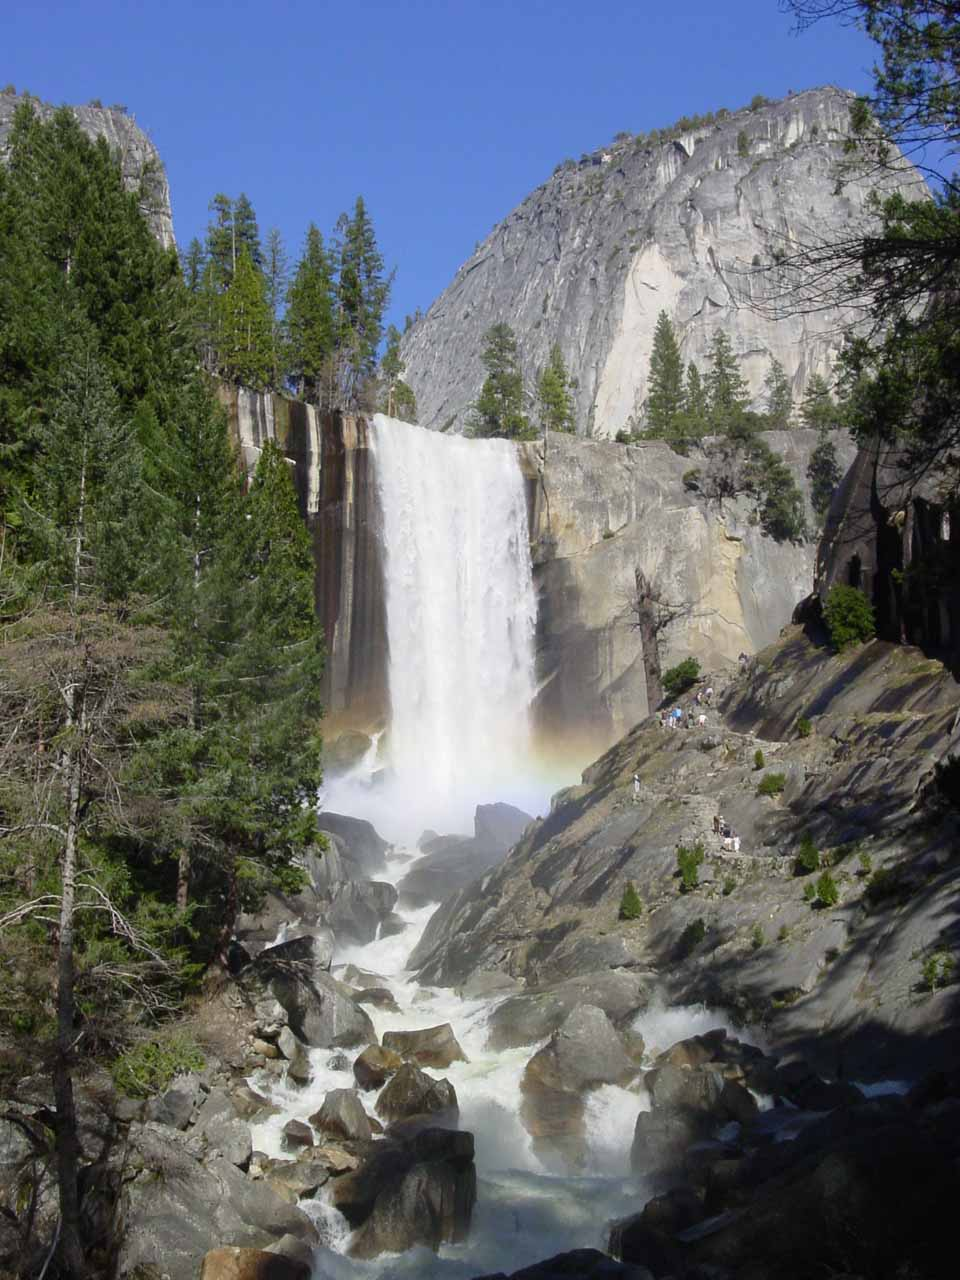 Vernal Fall and Liberty Cap with a rainbow spanning across its base from the Lady Franklin Rock next to the Mist Trail